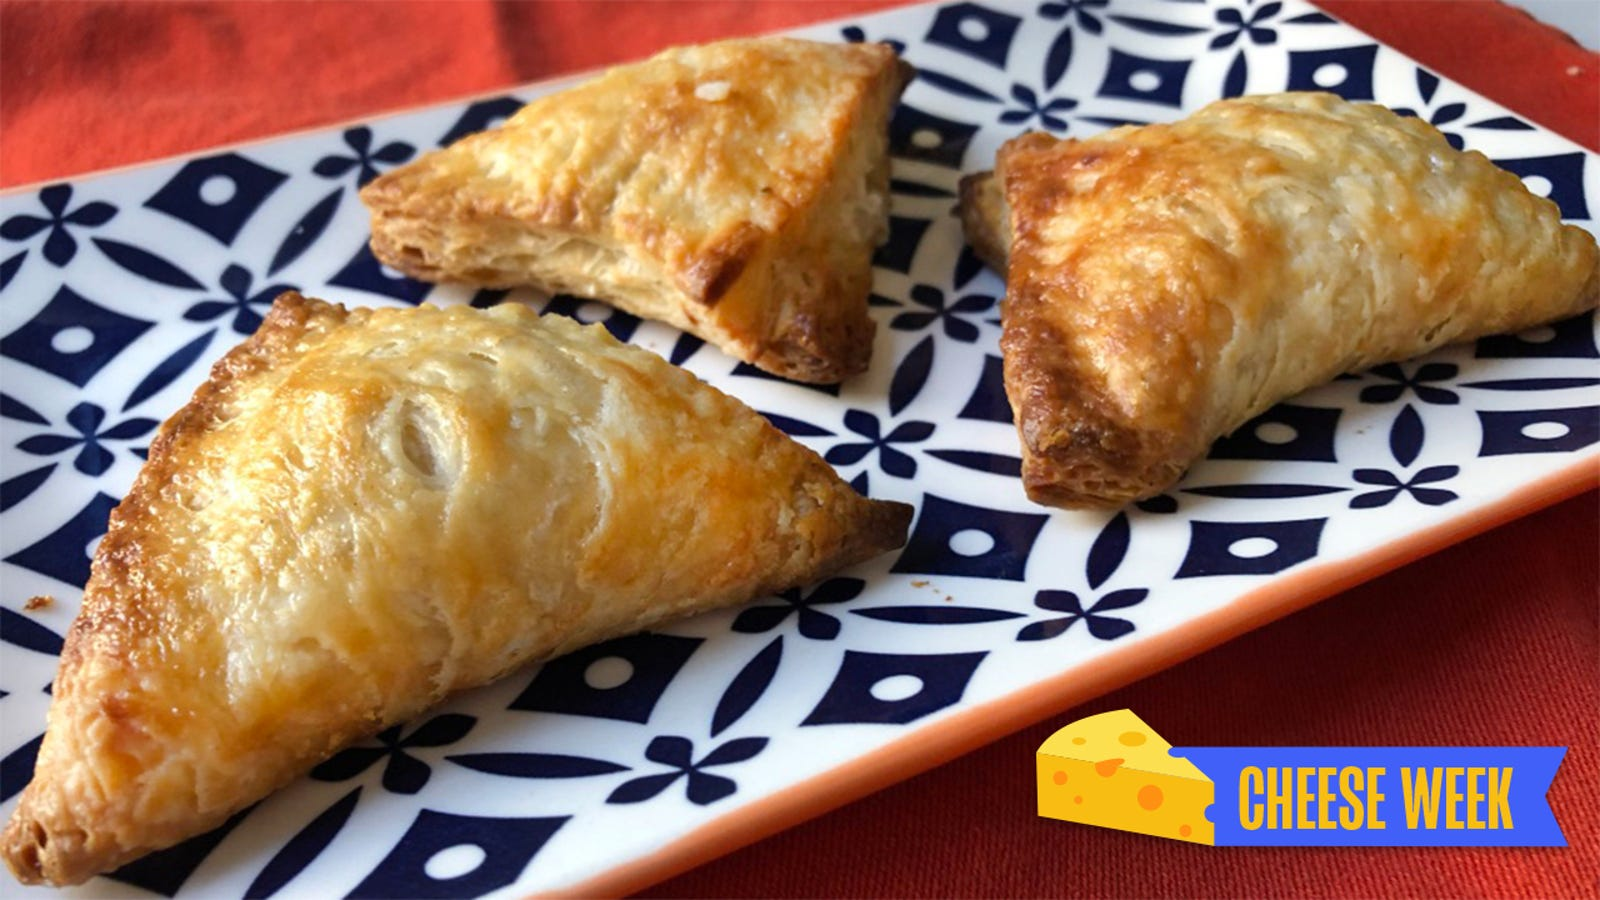 Cheese-stuffed hand pies with cheese crust is cheese plus cheese multiplied by cheese